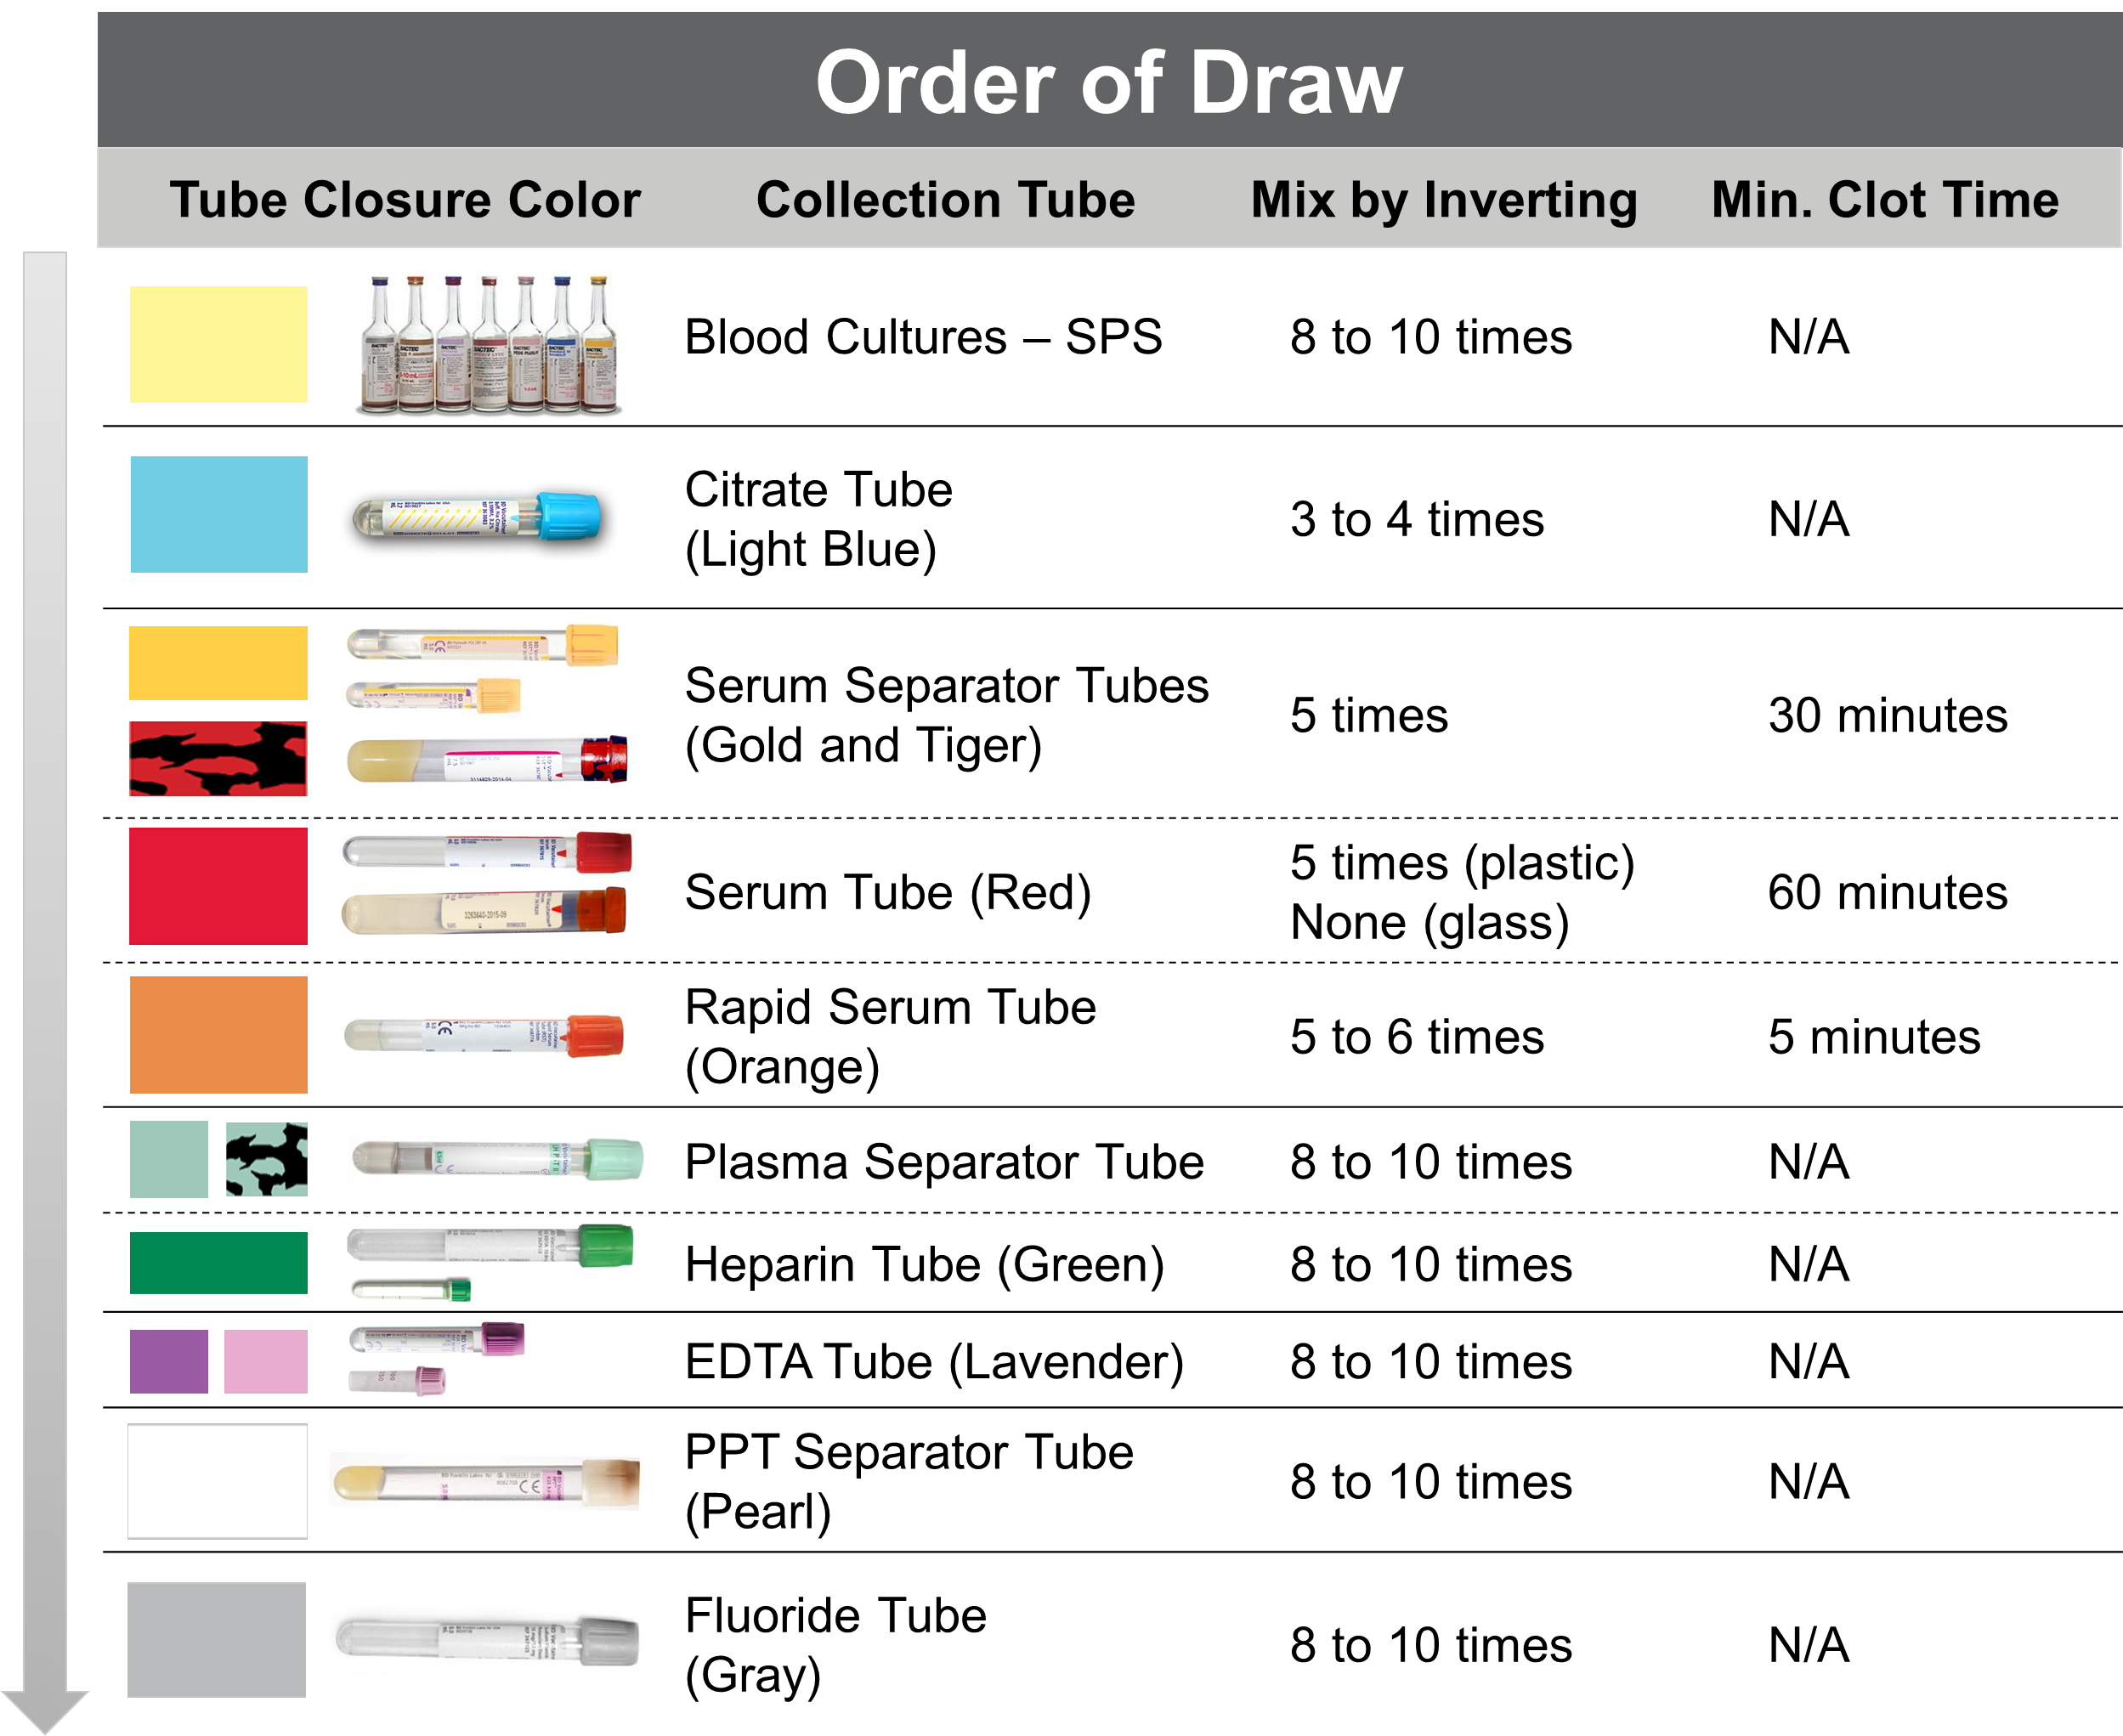 Drawing abgs cap. Order of draw certified